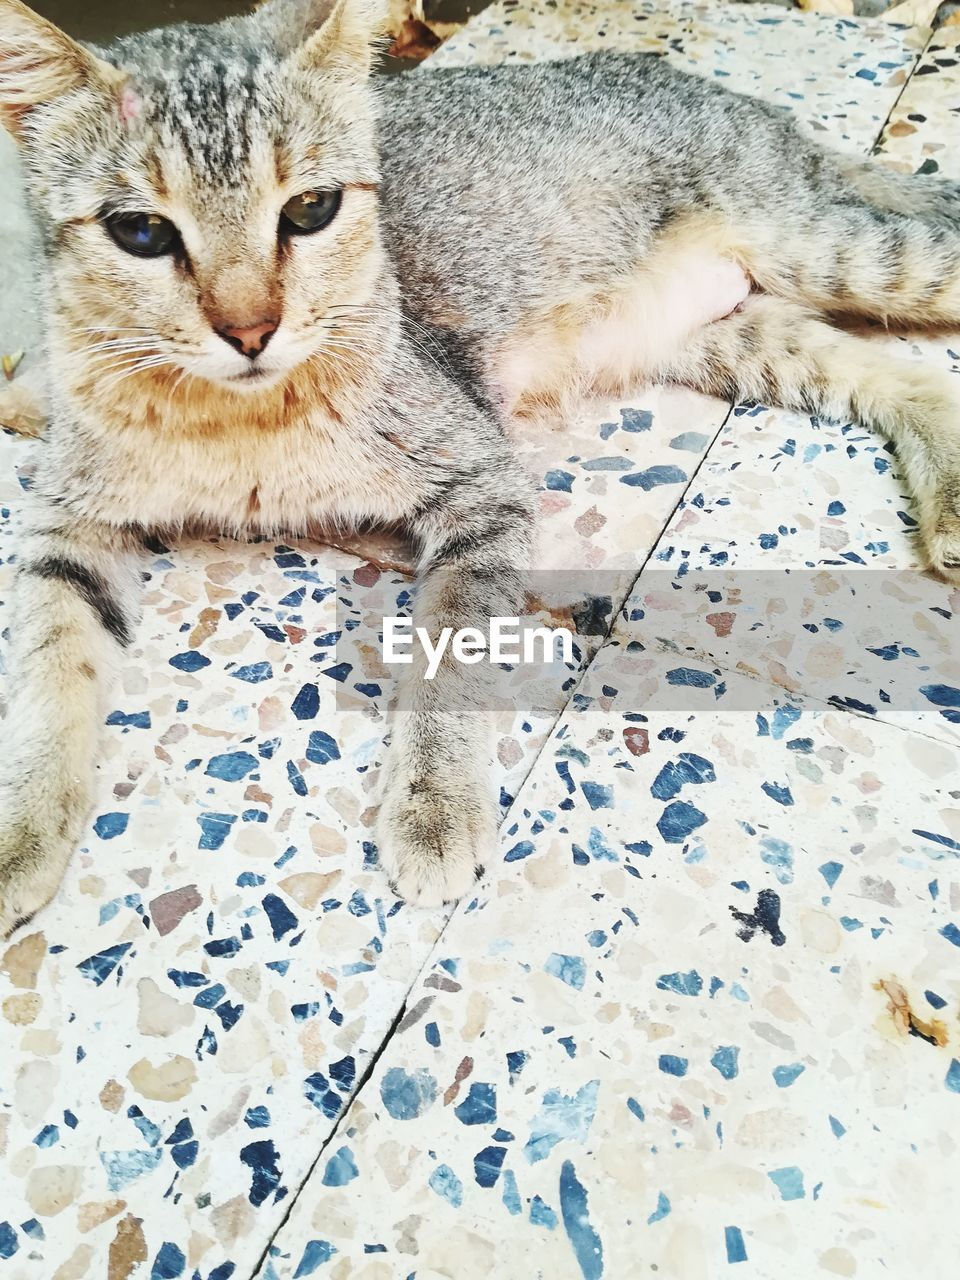 cat, feline, domestic cat, animal, mammal, animal themes, pets, indoors, domestic, one animal, domestic animals, bed, furniture, relaxation, no people, vertebrate, close-up, home interior, pattern, high angle view, flooring, whisker, tiled floor, floral pattern, animal eye